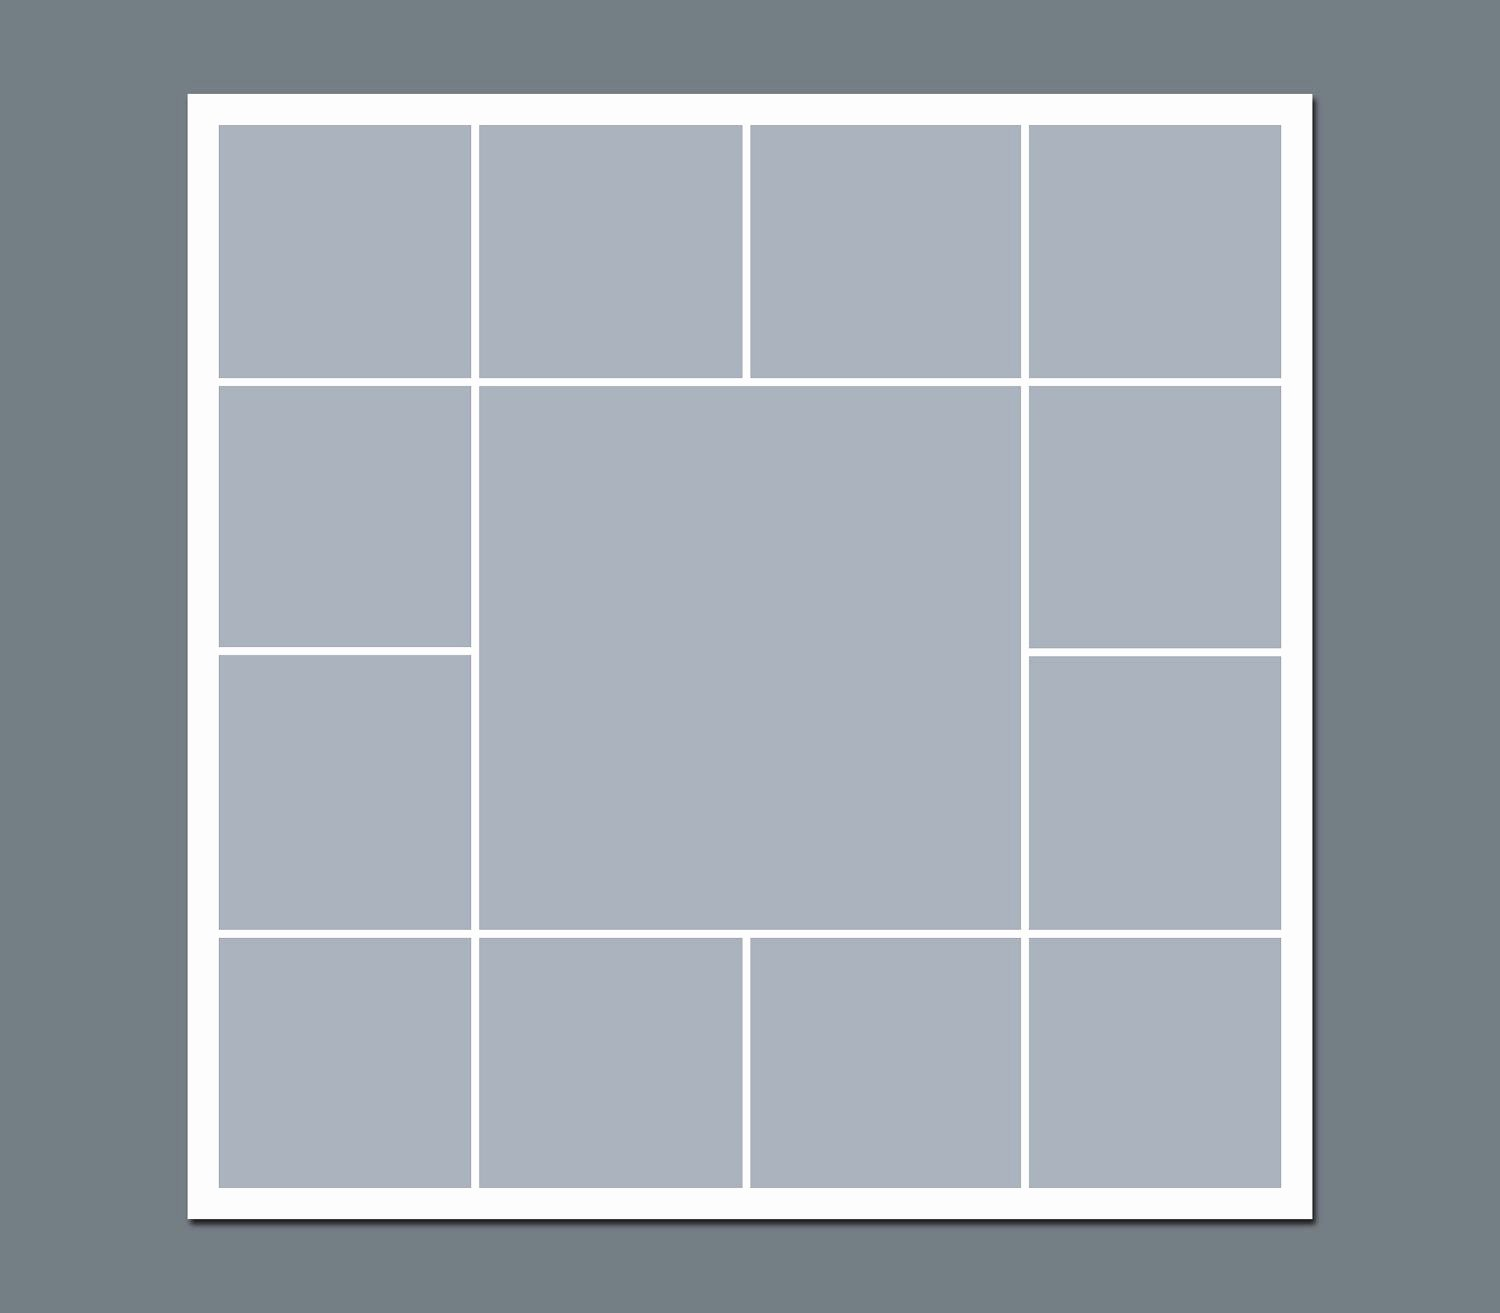 Picture Collage Template for Shop